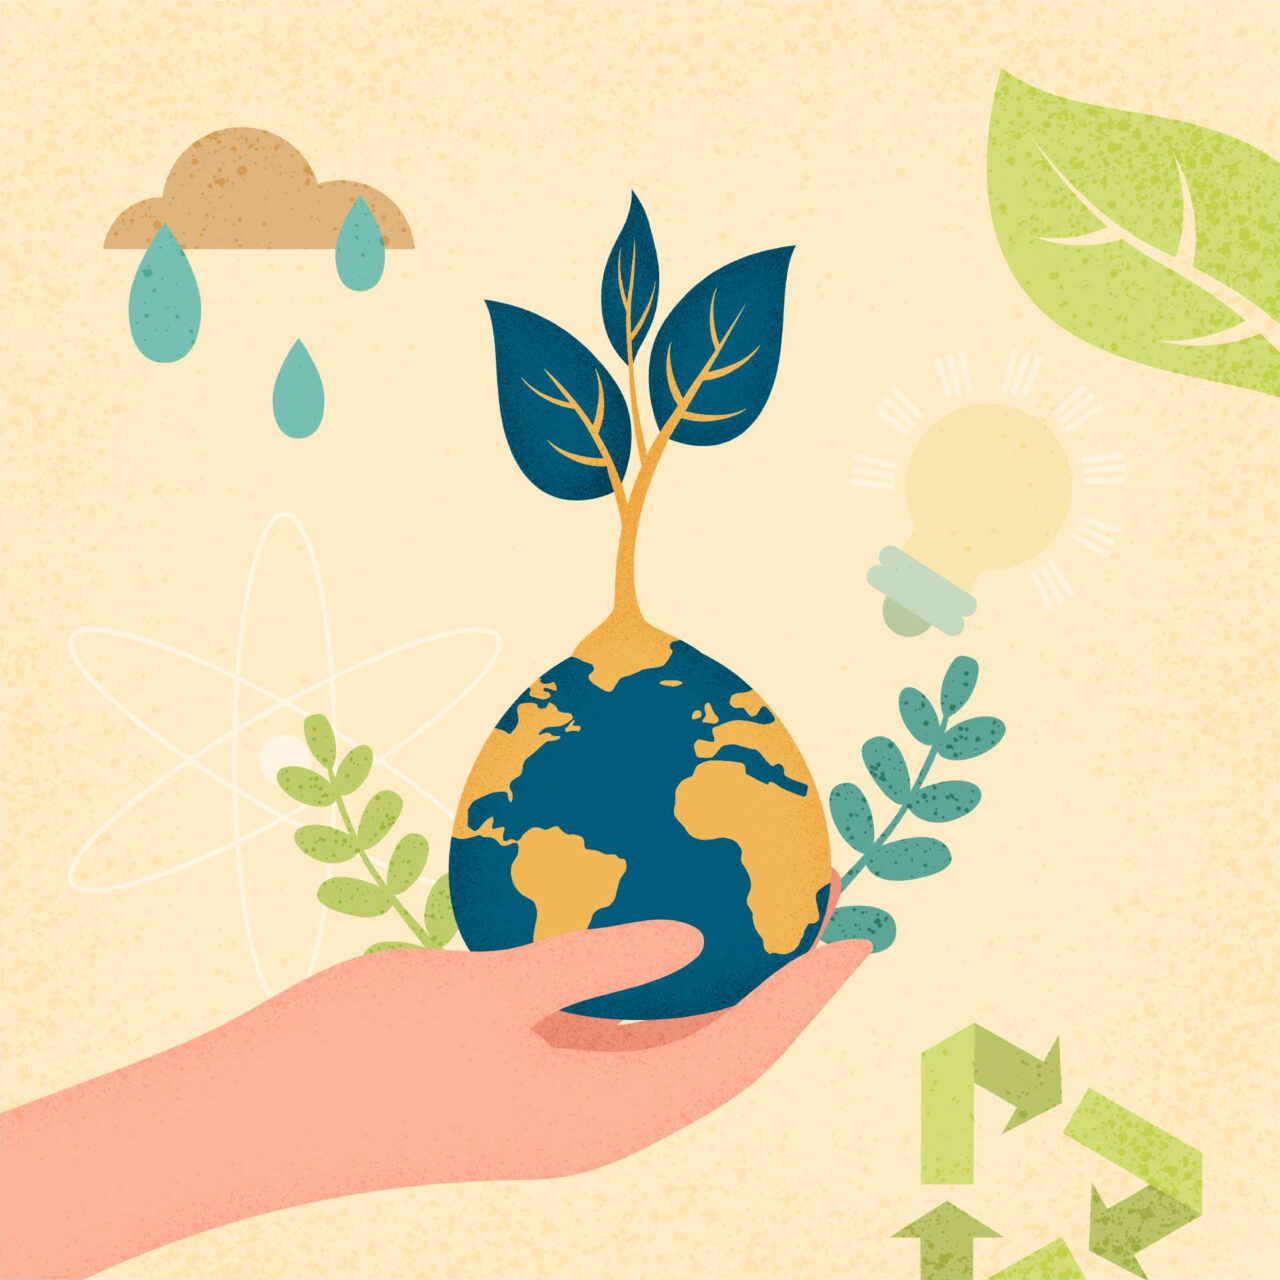 A vector picture shows a hand holding a sustainable world.